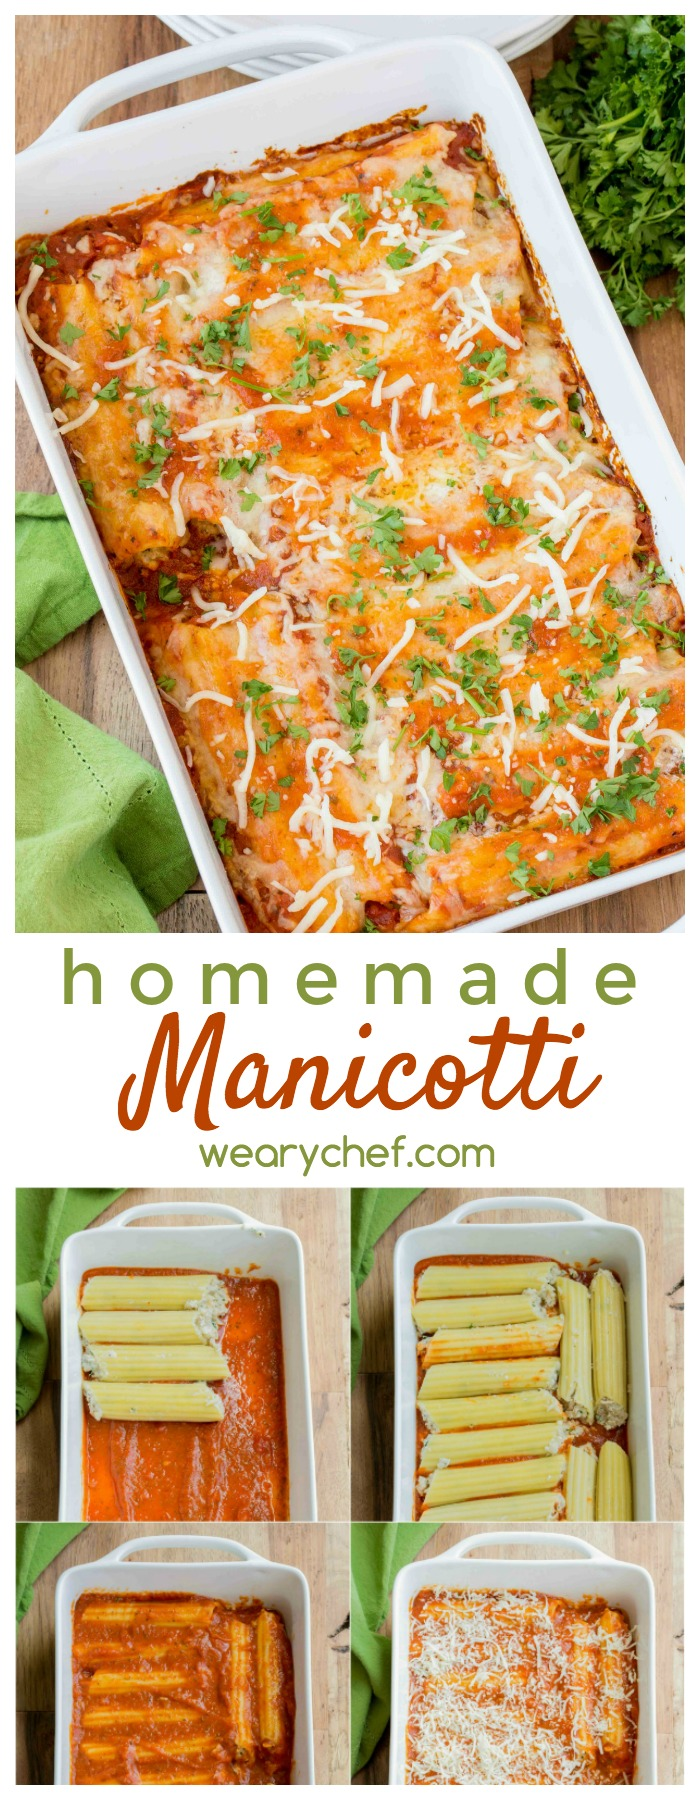 Forget the restaurant and enjoy this Homemade Manicotti right from your own oven!